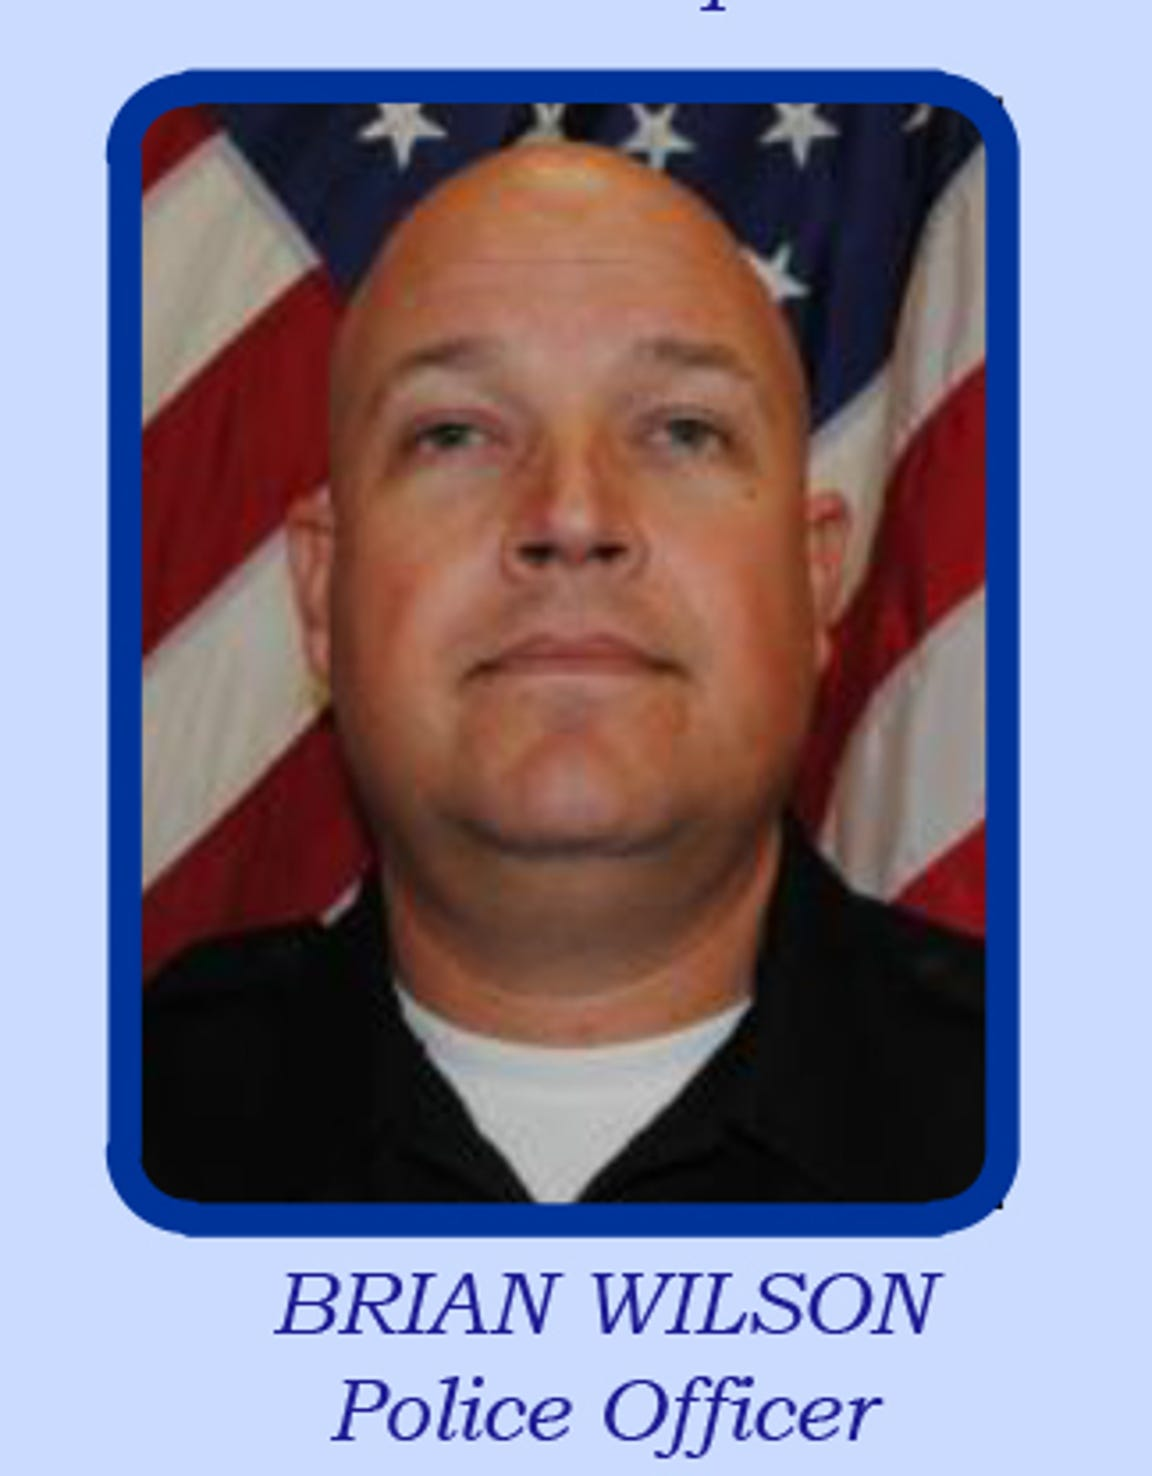 Brian Wilson, a police officer in McFarland, was convicted of drunken driving.